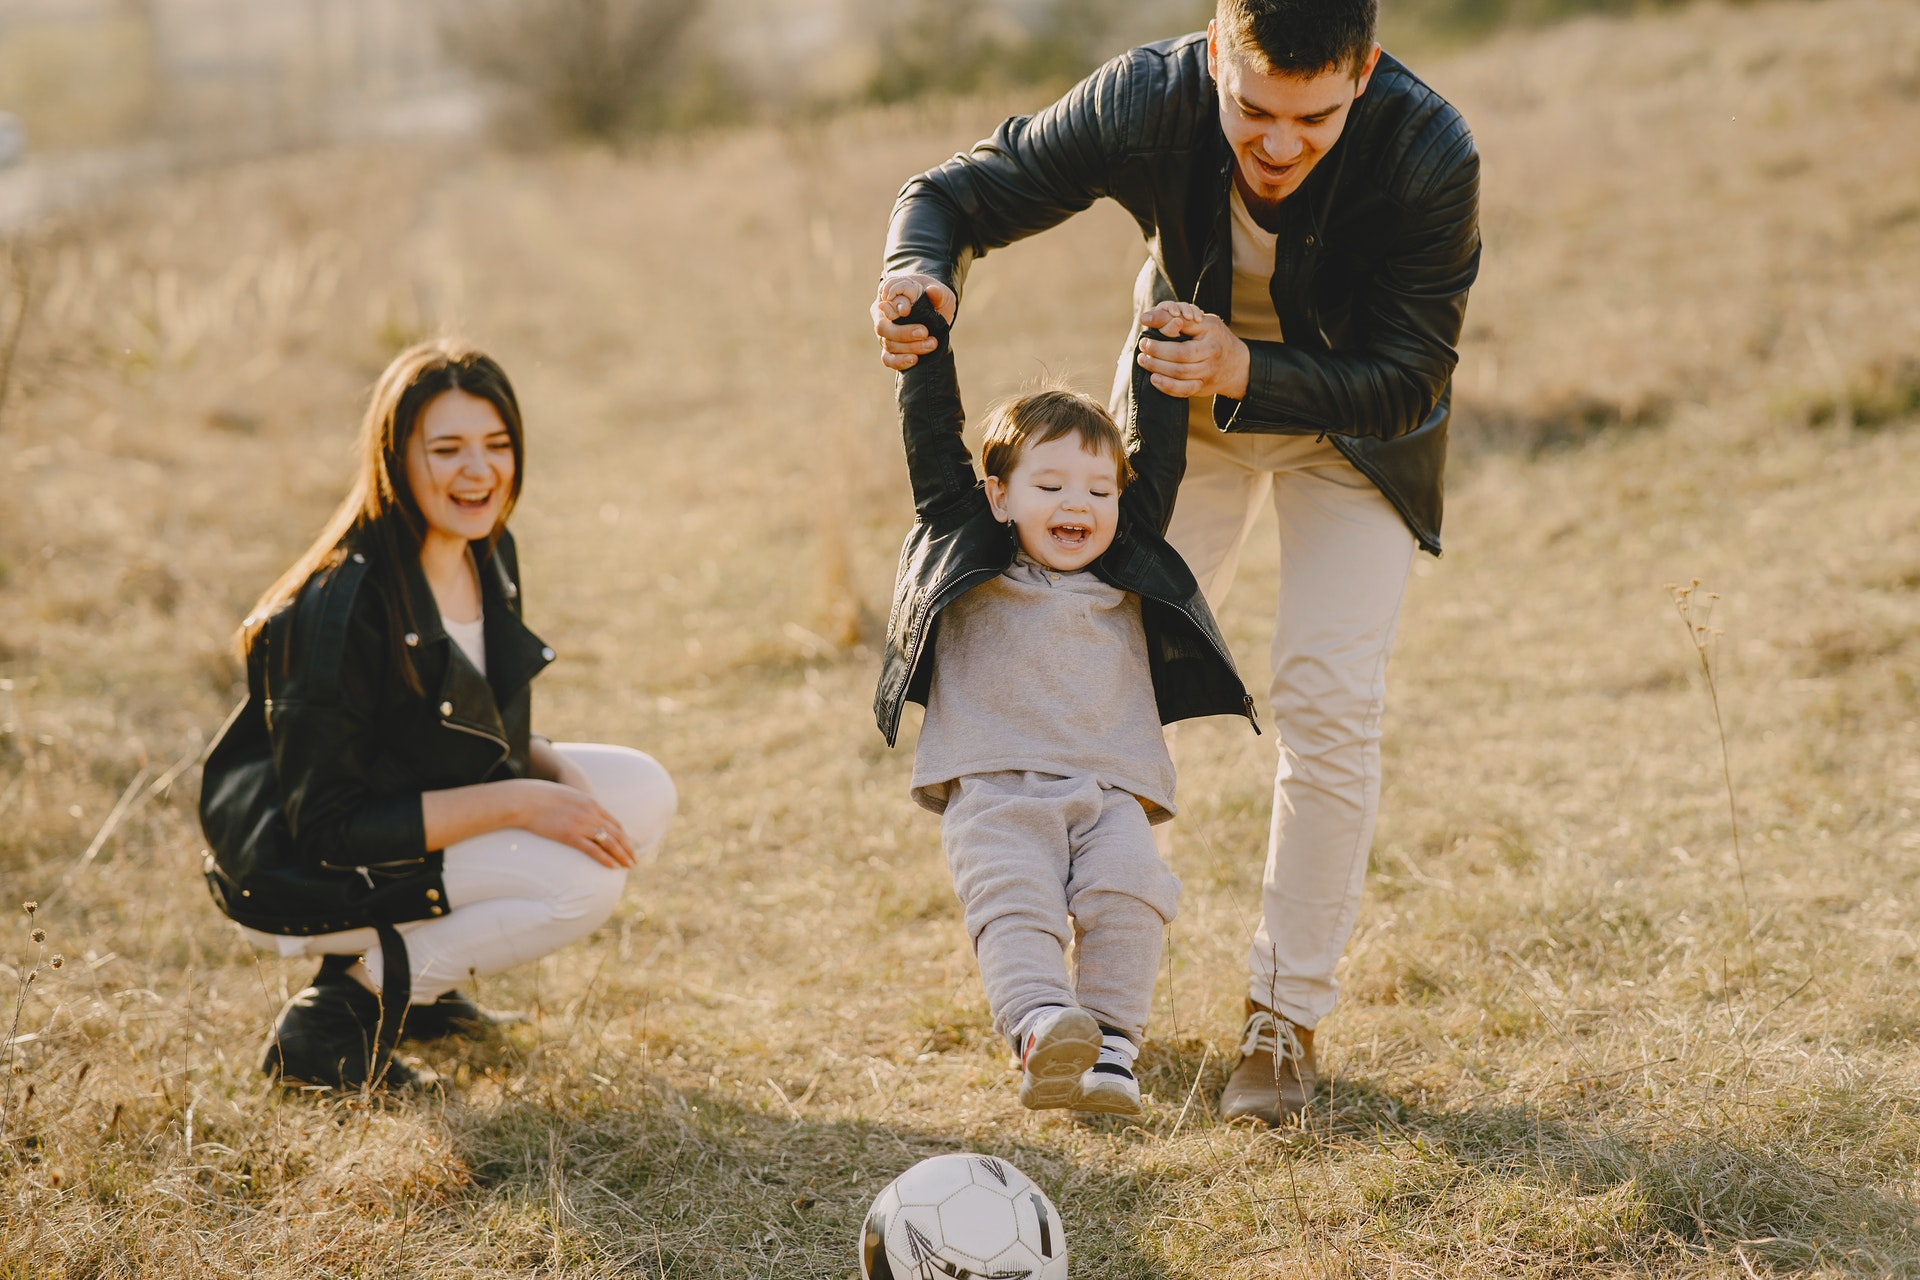 a family has fun with soccer ball